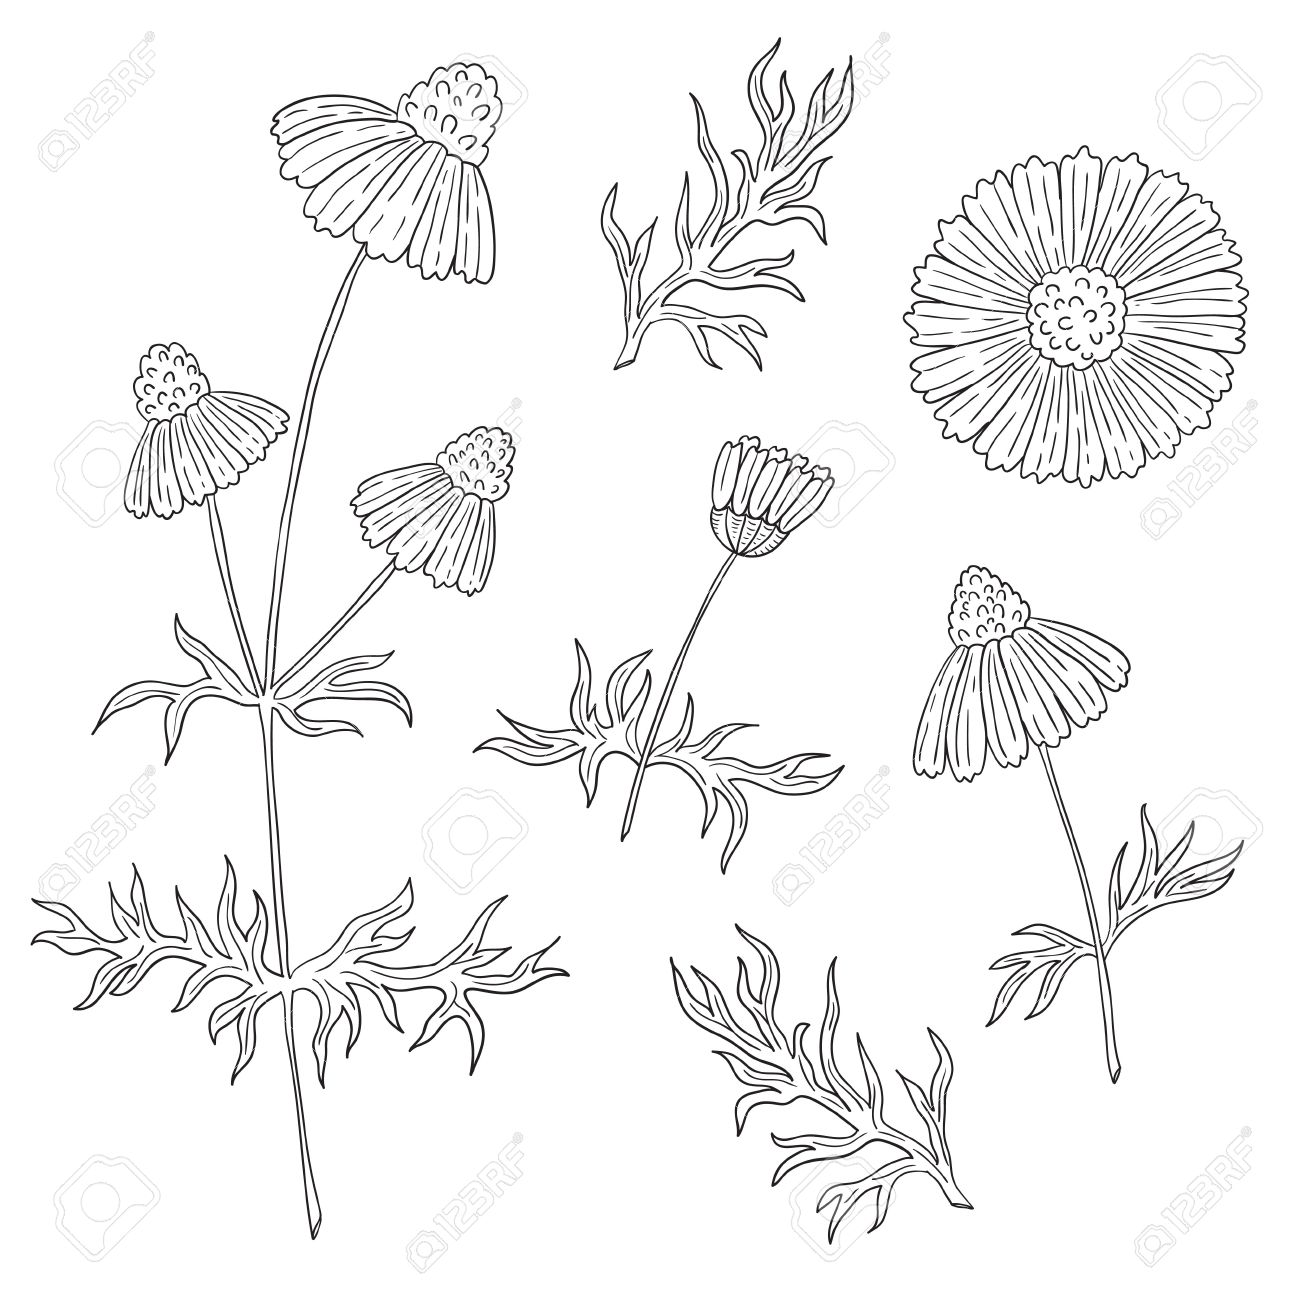 1300x1300 Camomile With Stem And Leaves Hand Drawing On A White Background